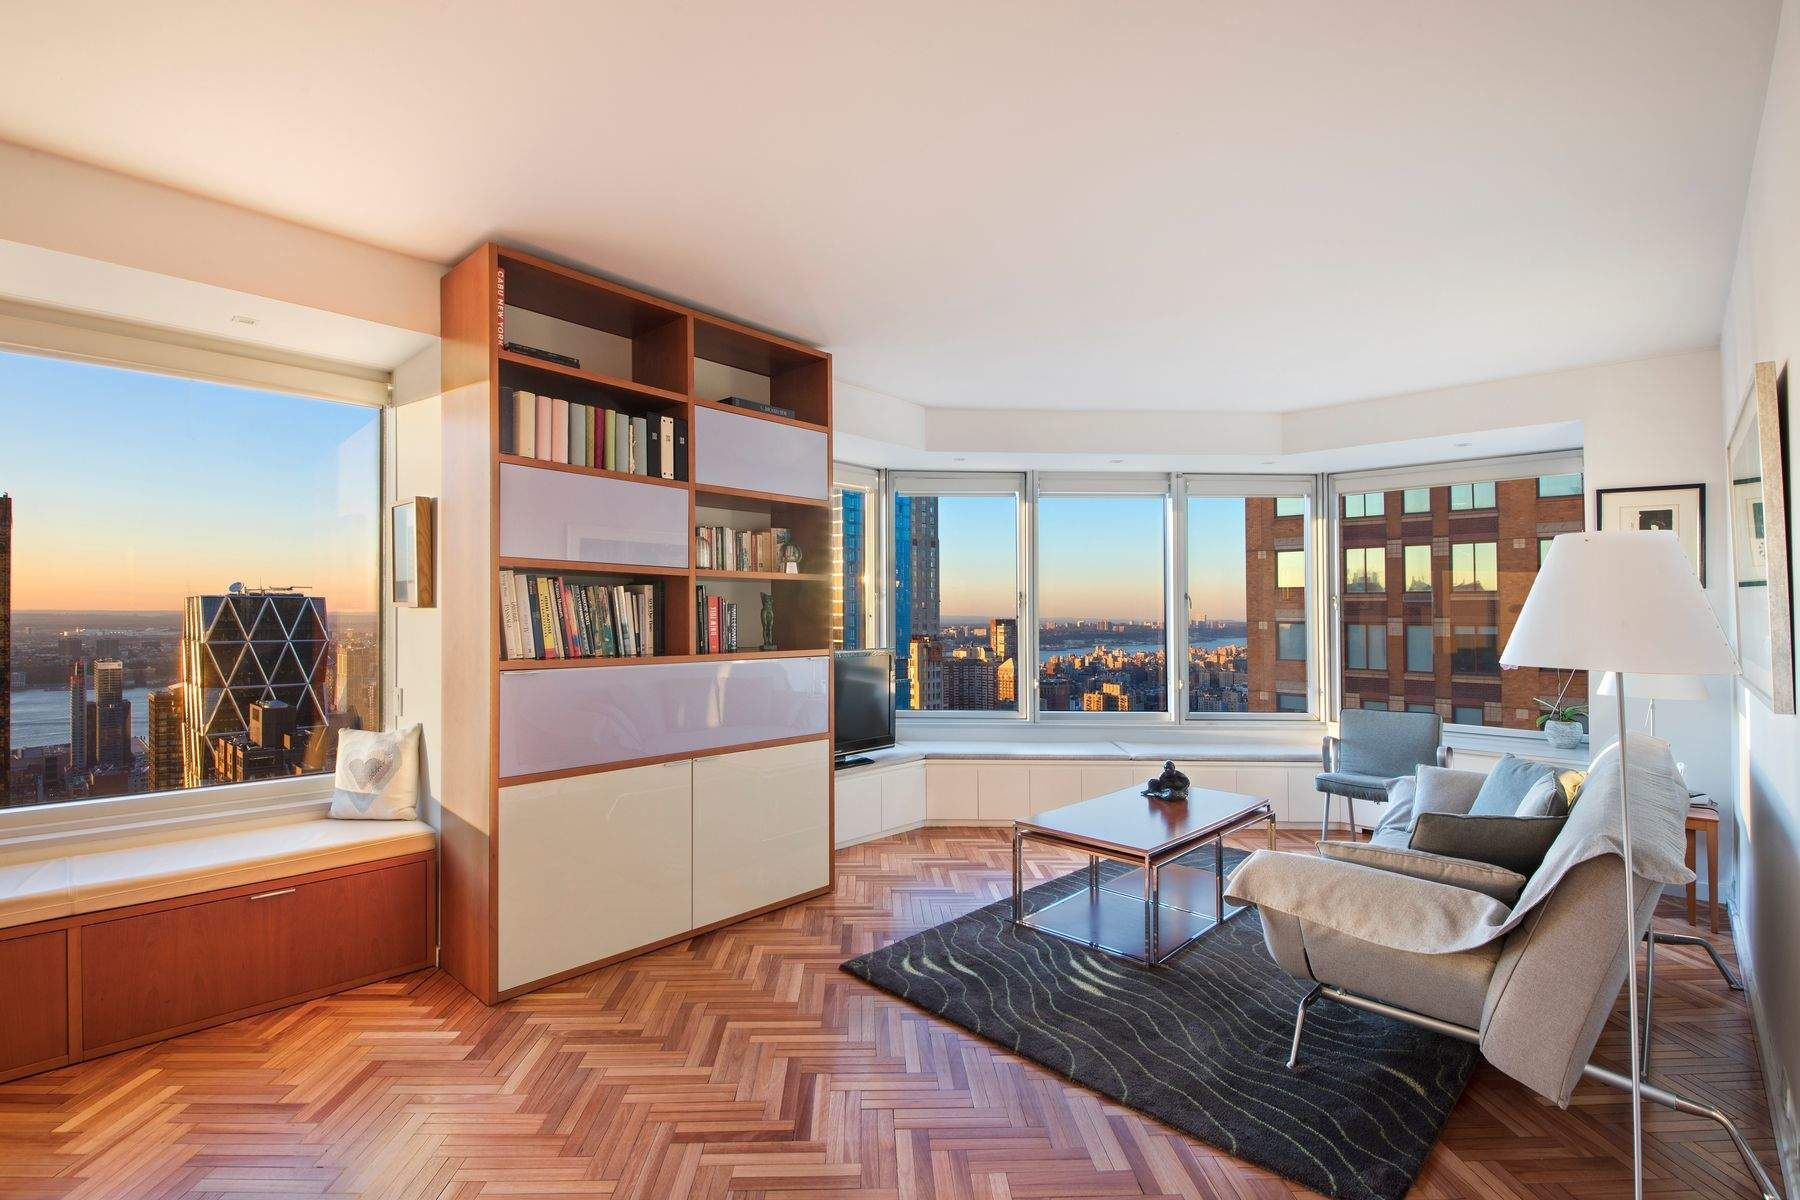 Rare opportunity to easily combine 2 of the Best Lines atop the Cityspire Condominium and create a beautiful +-2,498s/f, luxurious 4 or 5 bedroom home with a washer/dryer room and 3.5 baths!  Occupying the entire southwest and northwest corners of the building, three exposures with stunning views overlooking the Hudson River, with a portion of Central Park, the George Washington Bridge and southern skyline are all yours to enjoy.This aerie offers an open living concept, and windows that are nearly floor to ceiling, allowing light to abound in every corner of every room.  5604 was recently upgraded with custom lighting, beautifully finished herringbone floors and sleek built-ins with living room window seats to enjoy the view.  The windowed Chefs' Kitchen features a clean open design, perfect for celebrity worthy entertaining.  High end appliances are seamlessly fit within the white custom cabinetry. Countertops are luxurious grey quartz.  There are 2 generously sized, separated bedrooms with ample closet space.  The Master Bedroom has a large renovated ensuite shower bath with fine finishes, a lofted window for natural light and double vanity.  The second bedroom, on the other side of the entrance gallery, offers a sunny southern view and a lovely ensuite marble bath.  There is a renovated powder room off the Gallery.  Combining 5604 with 5605, presently a separate 916s/f one bedroom, 1.5 bath, would create a multitude of opportunities for expansive living and privacy; perhaps 2 additional bedrooms, a laundry room and an additional full bathroom.  Alternative floorplan ideas are given.For the combination apartments there is a Special Assessment of $301 per month until May 21 and a Reserve1 Fee of $90 per month.THE BUILDING:  Occupying a prime position in the heart of this iconic city, Cityspire offers World Class, white glove service with a modern lobby and newly renovated hallways and amenities.  The attentive staff include 24 hour Doormen, a Concierge, Handymen, Resident Manager and more.  Wellness and Fitness lovers will immerse themselves in the pristine amenities; a beautiful heated lap POOL with a Hot Tub Jacuzzi, Steam and Sauna Room, a Yoga Room and a new Health Club with locker/shower rooms.  The amenities are endless with a Residents Lounge, Conference room, Children's Playroom, Valet Service and a Garage.   Cityspire is conveniently located near Central Park, Whole Food Market, Theater District, Lincoln Center, Carnegie Hall, Time Warner Center. Pied-a-Terres and pets allowed.